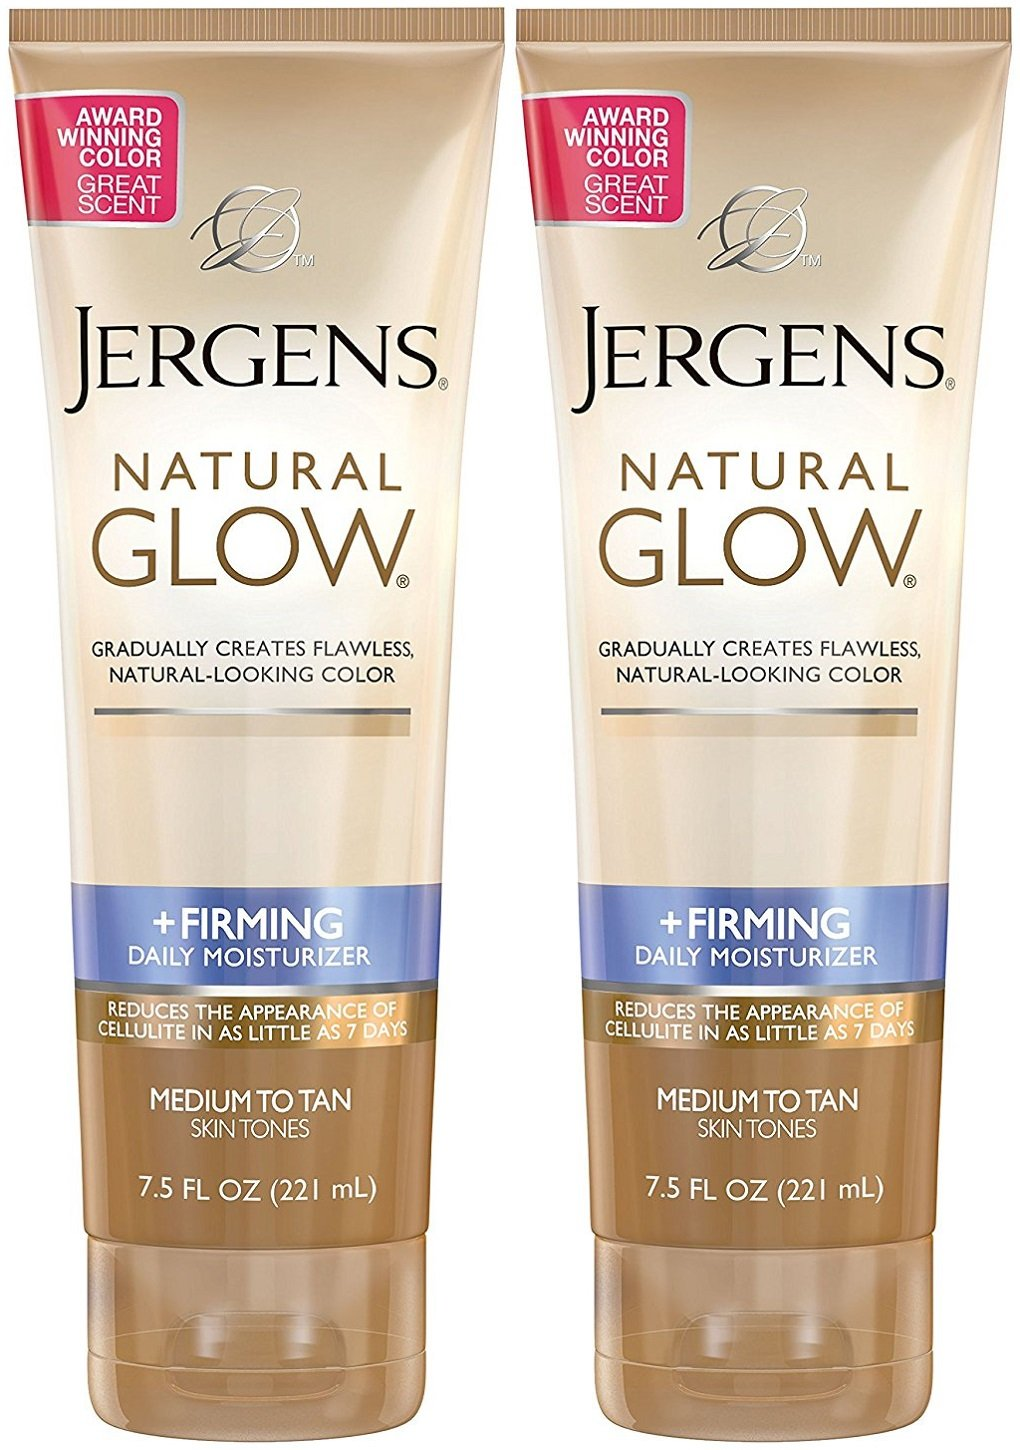 Jergens Natural Glow +Firming Daily Moisturizer, Medium to Tan Skin Tones, 7.5 Ounce (2 Pack) by Jergens